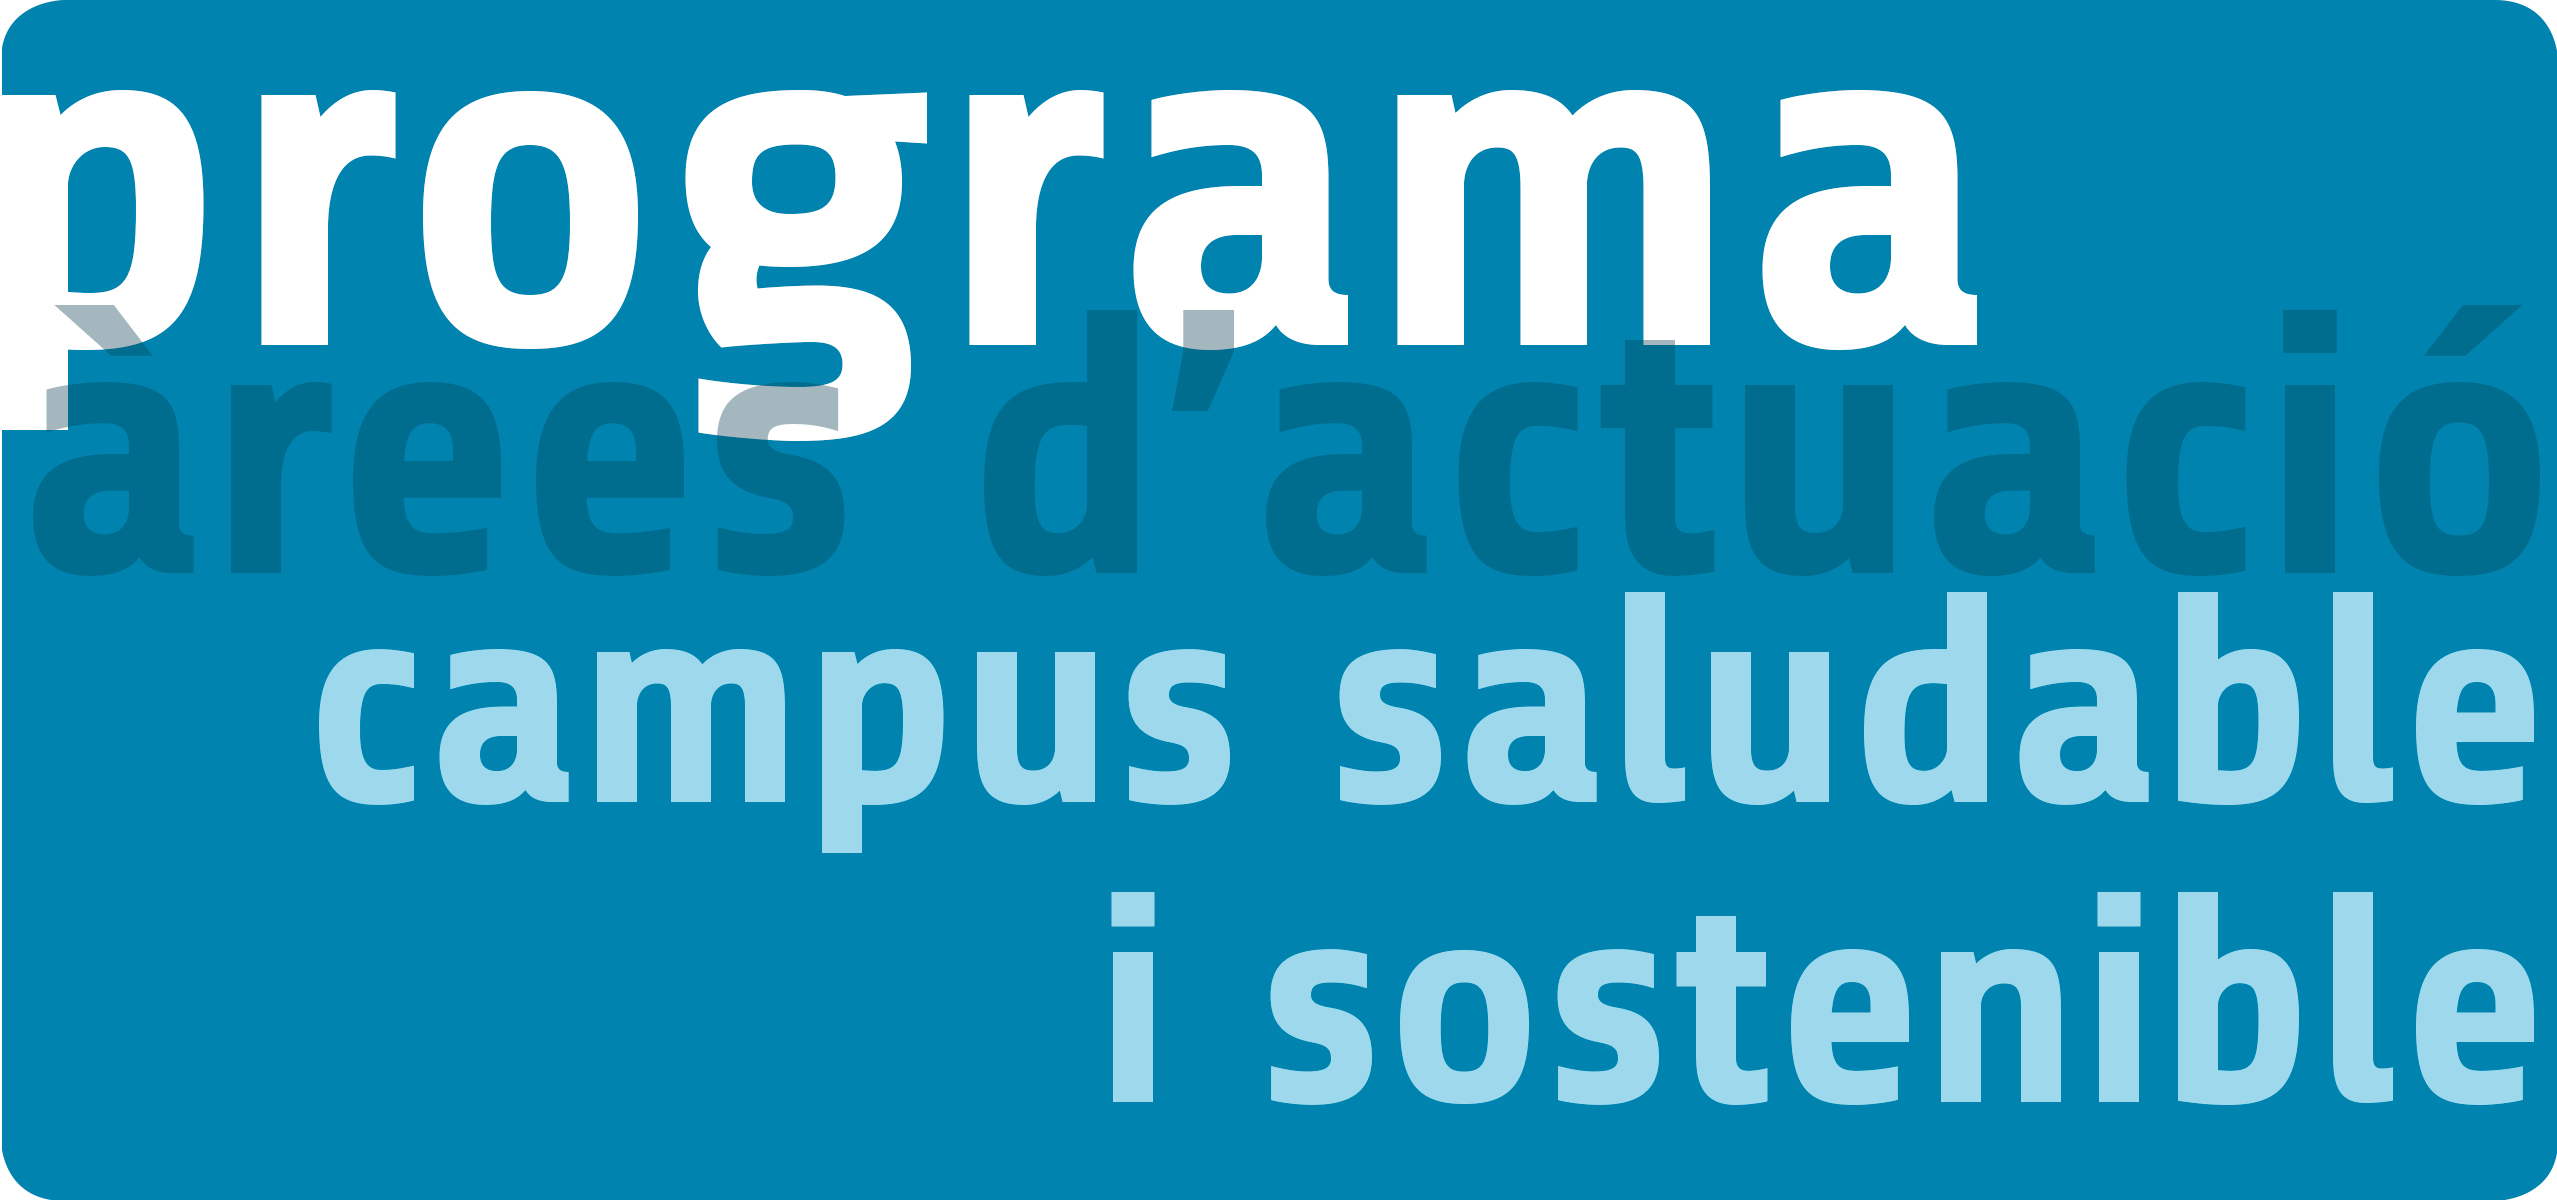 Campus saludable i sostenible